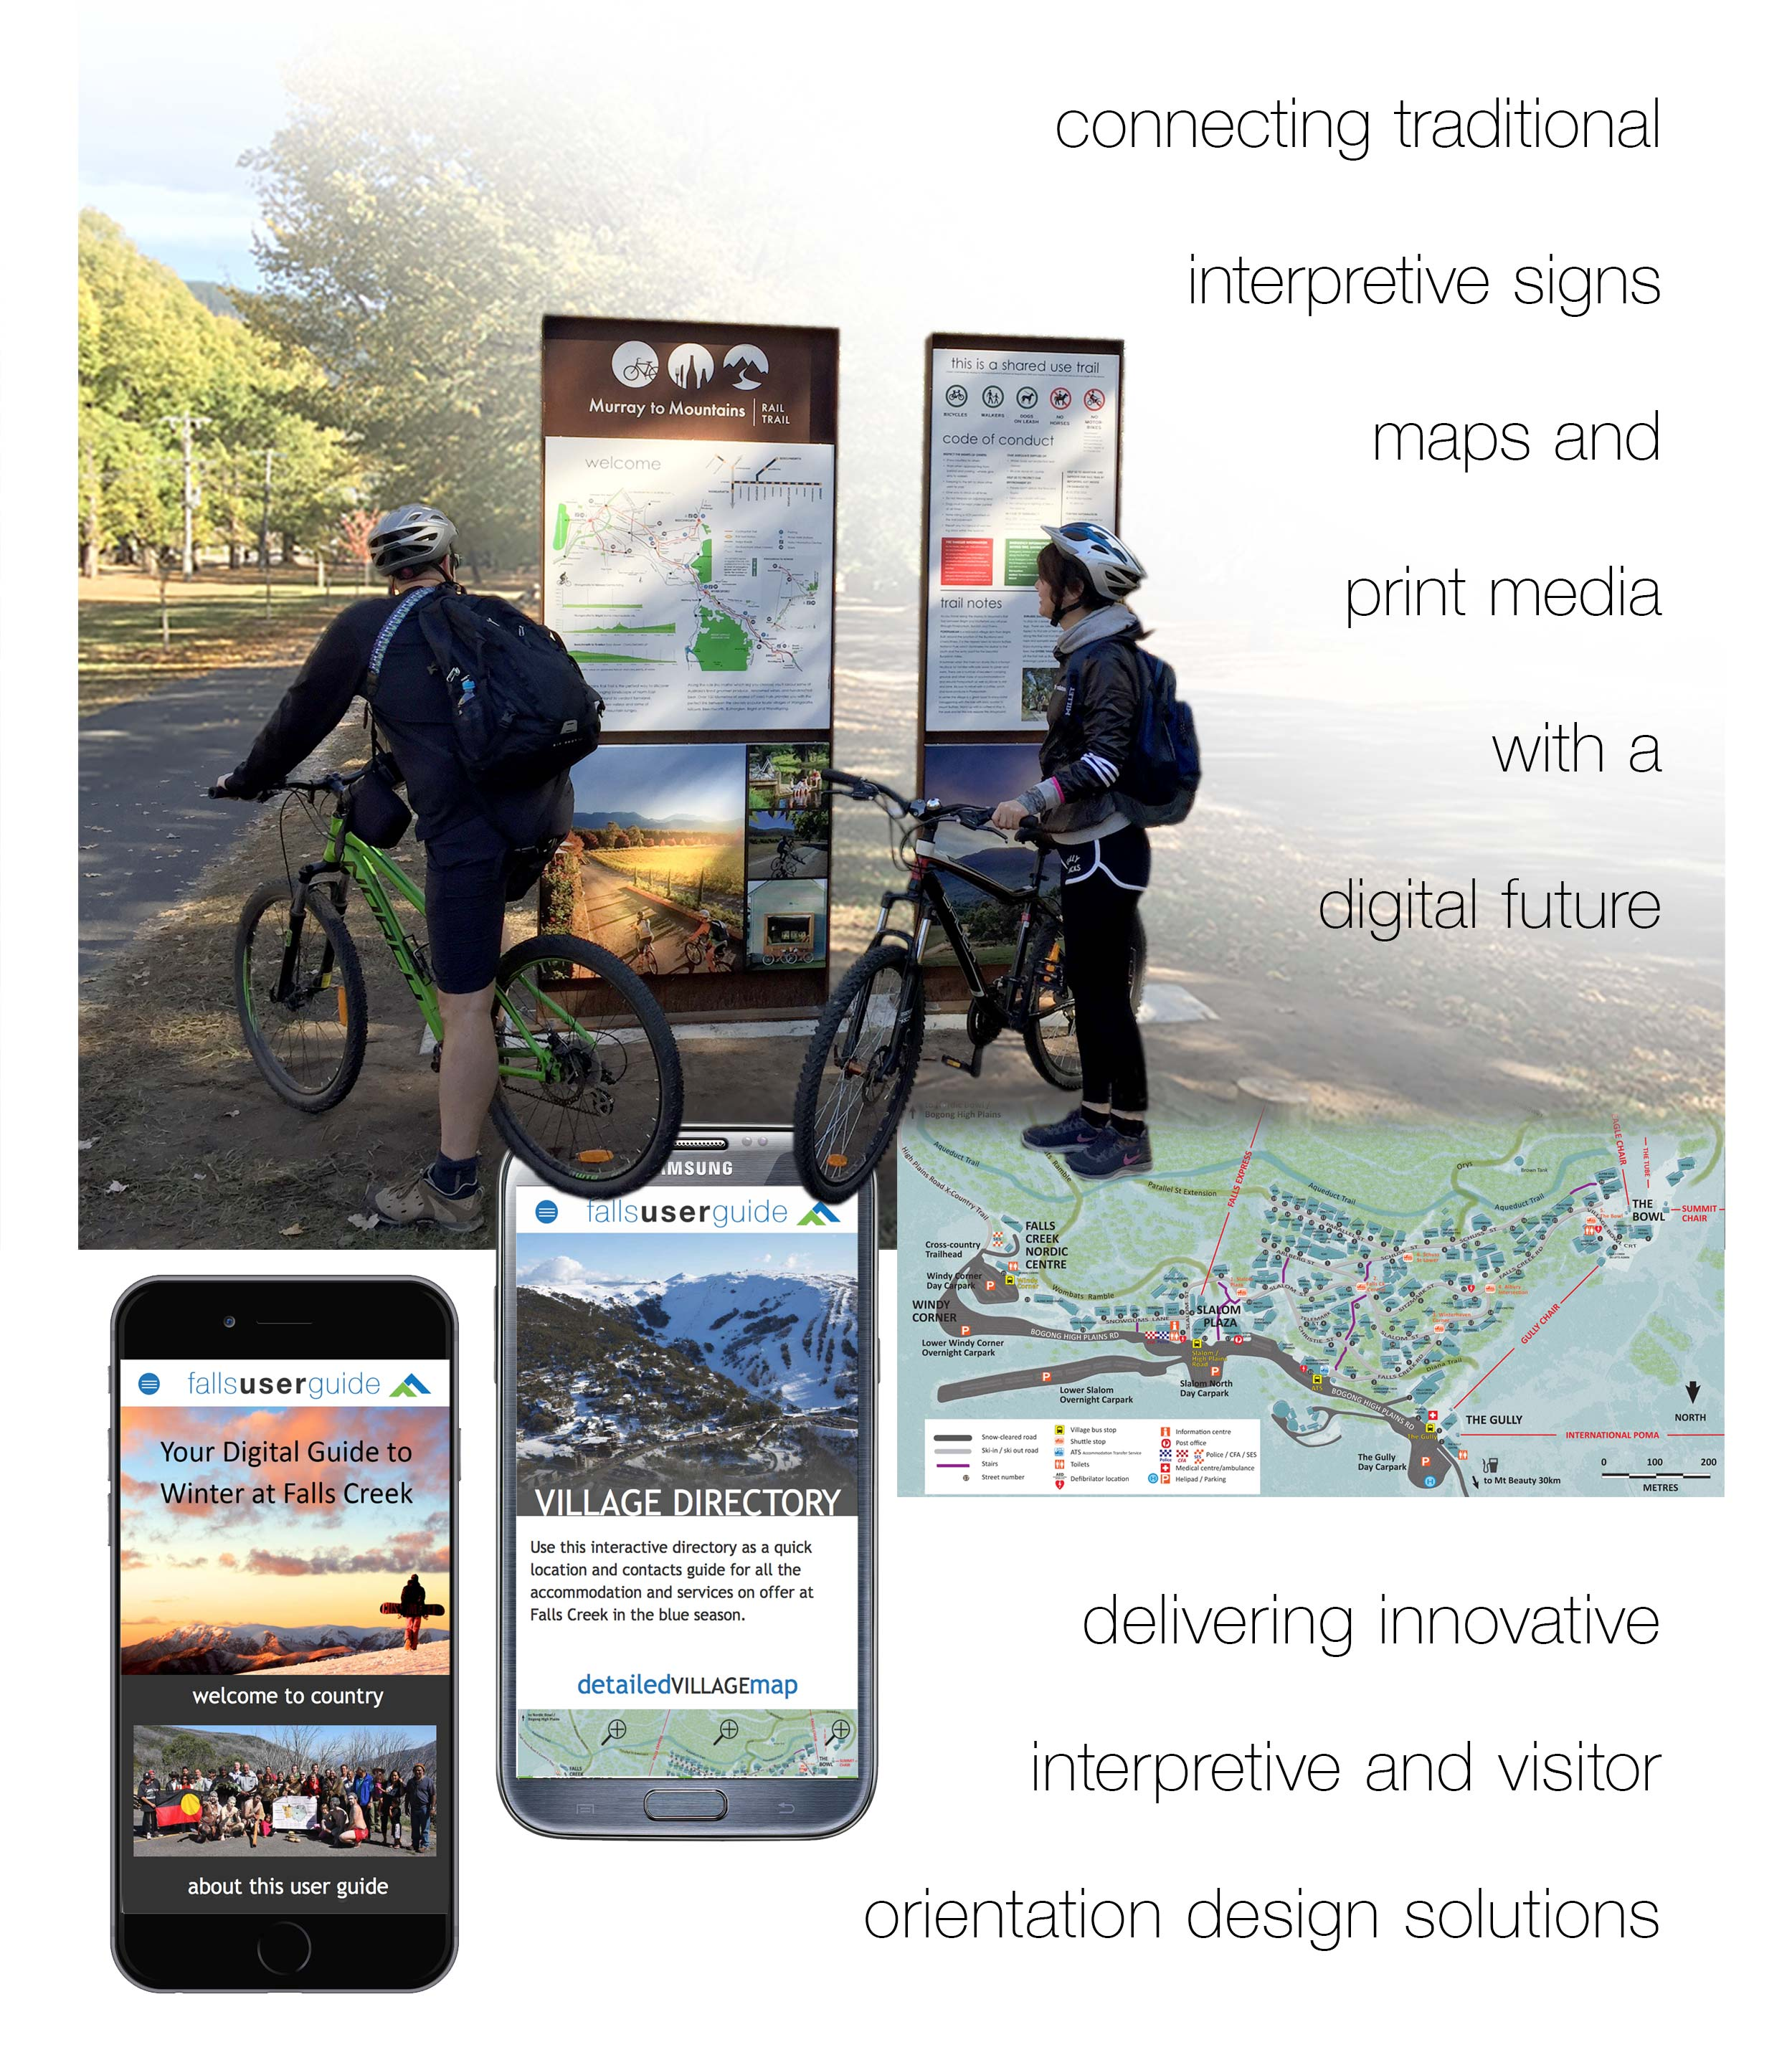 connecting traditional  interpretive signs maps and  print media  with a  digital future - delivering innovative         interpretive and visitor orientation design solutions